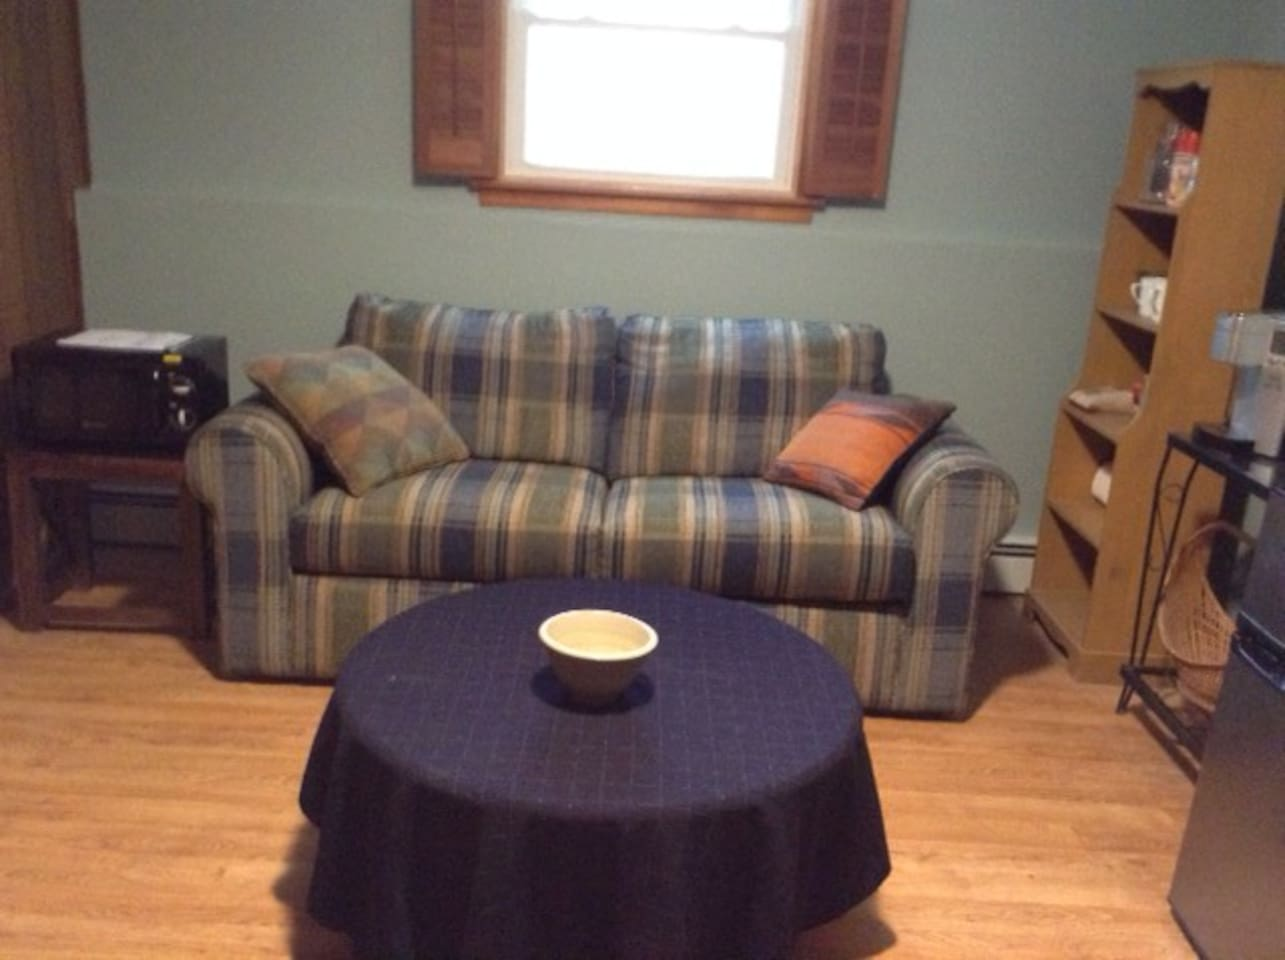 Sitting room containing fridge, coffee maker and microwave.